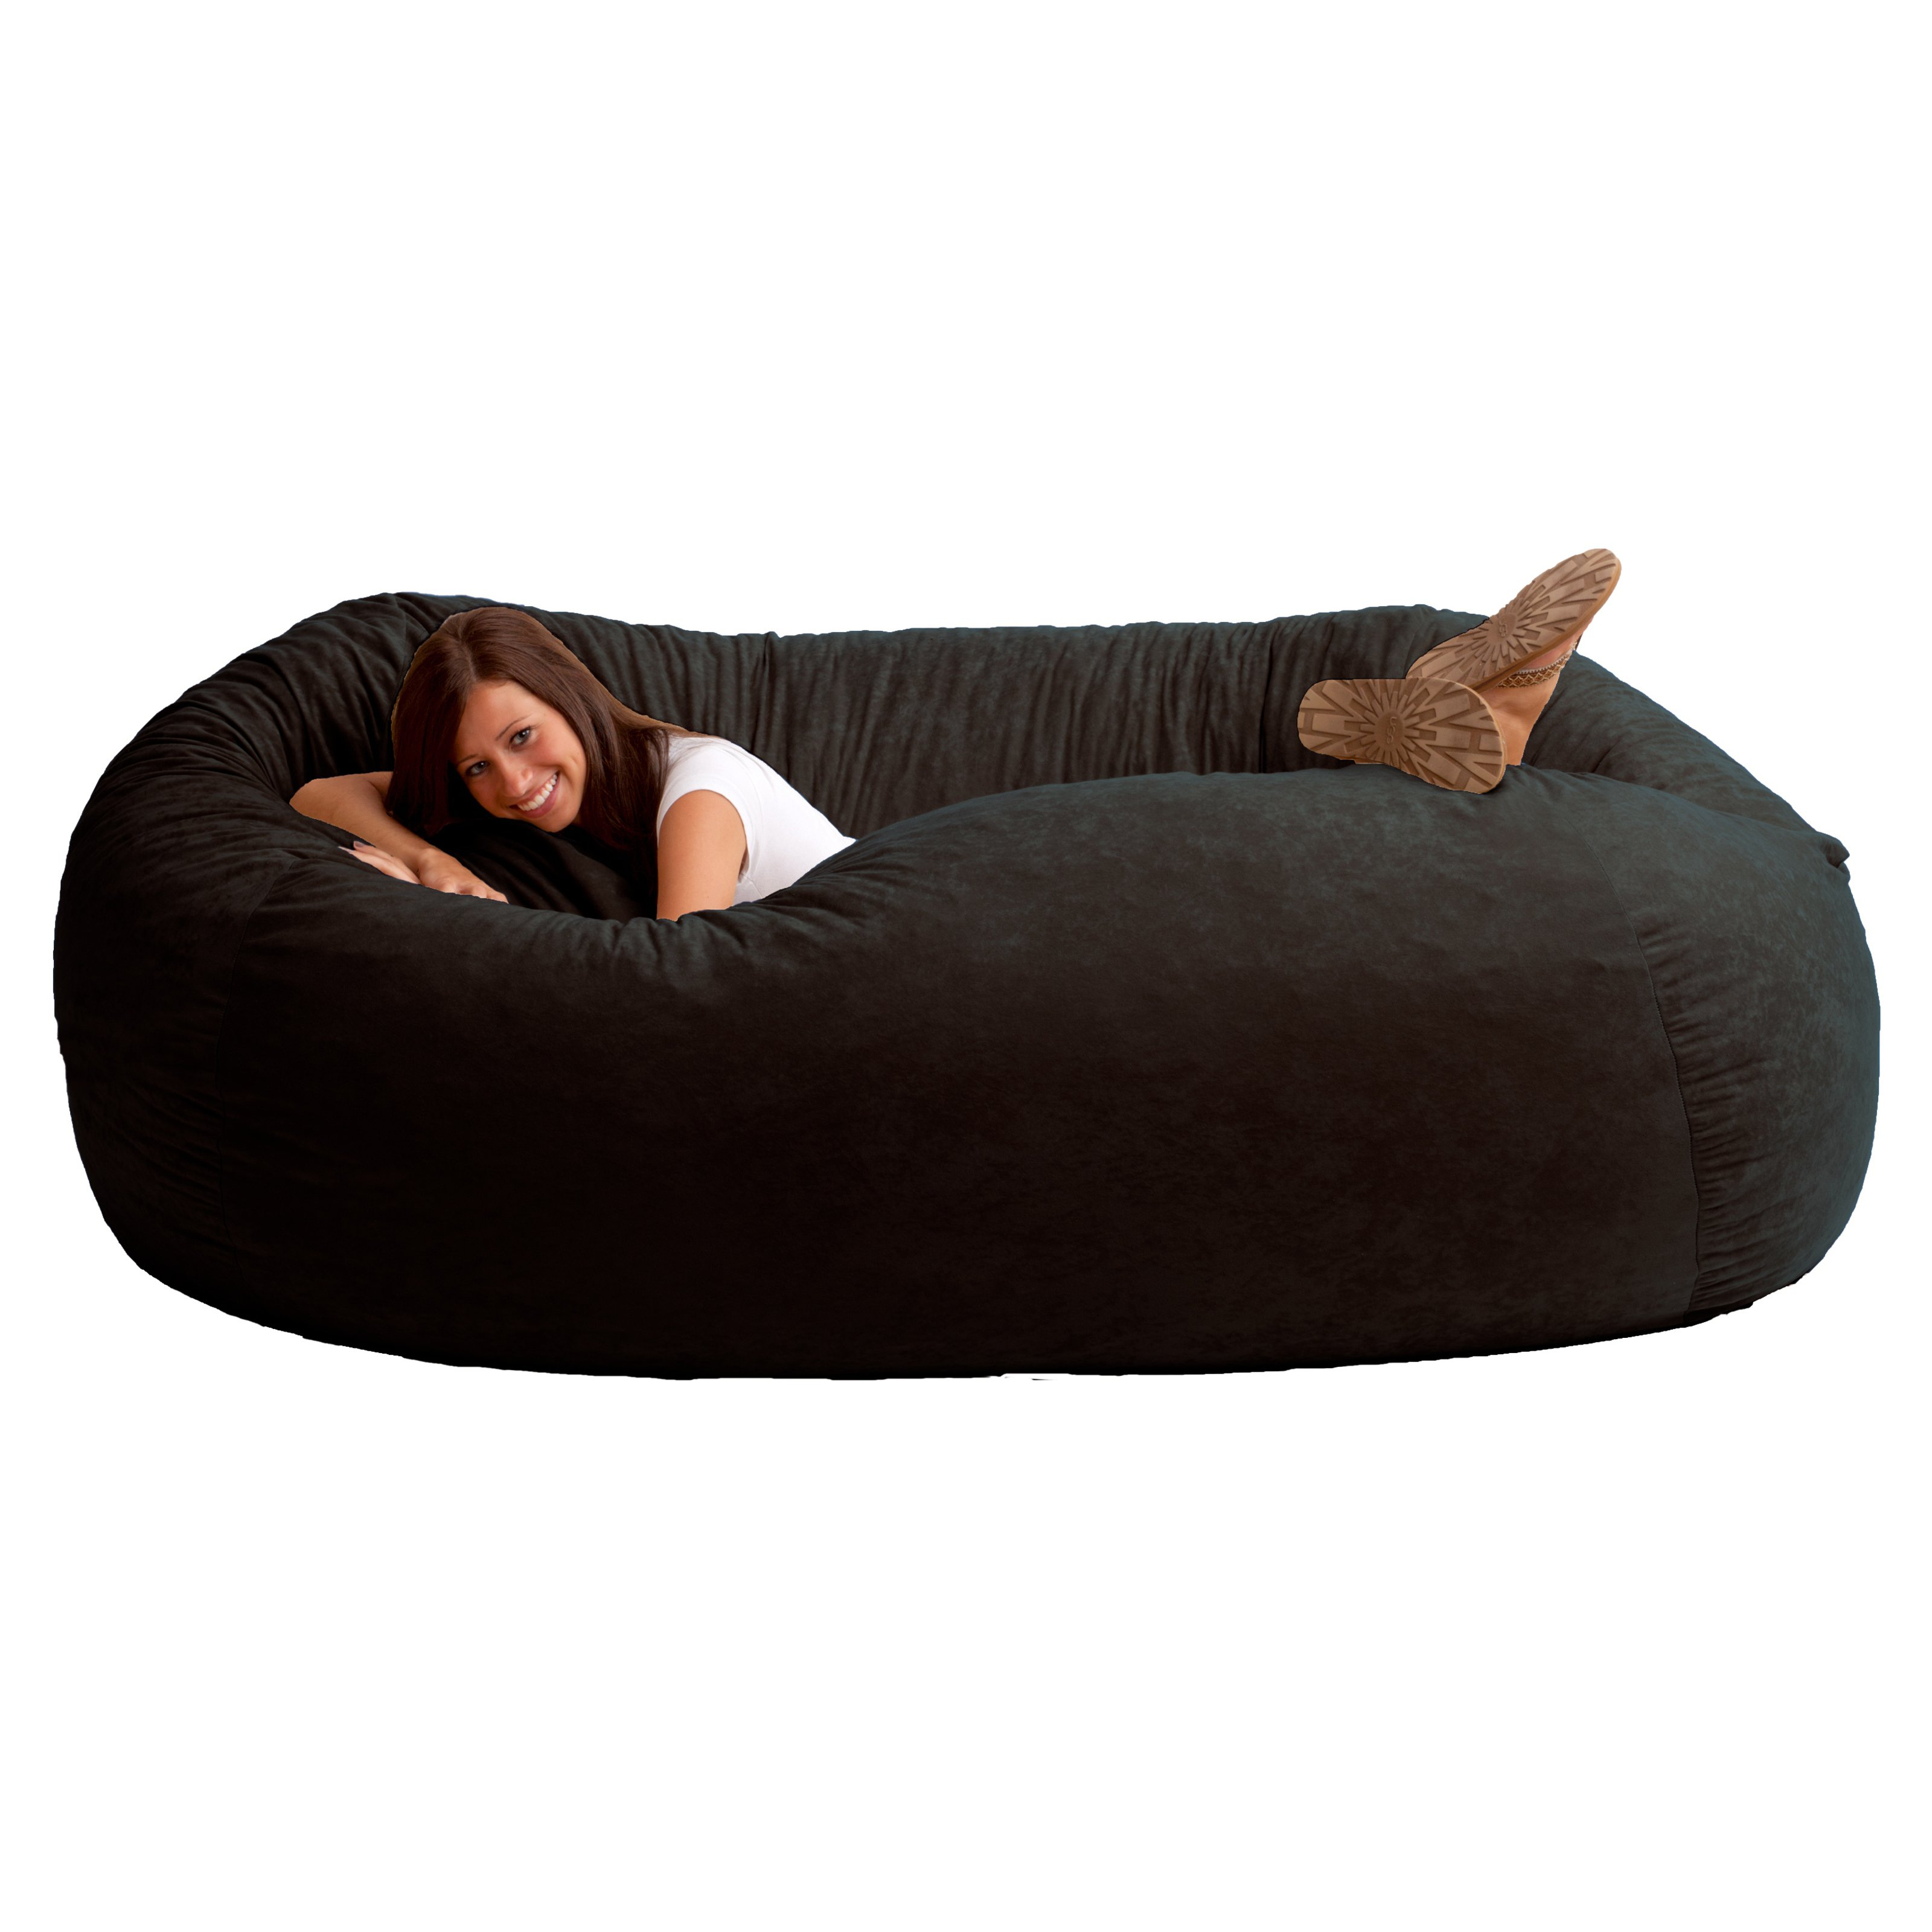 how much is a bean bag chair at walmart dining room covers christmas xxl 7 39 fuf comfort suede multiple colors ebay